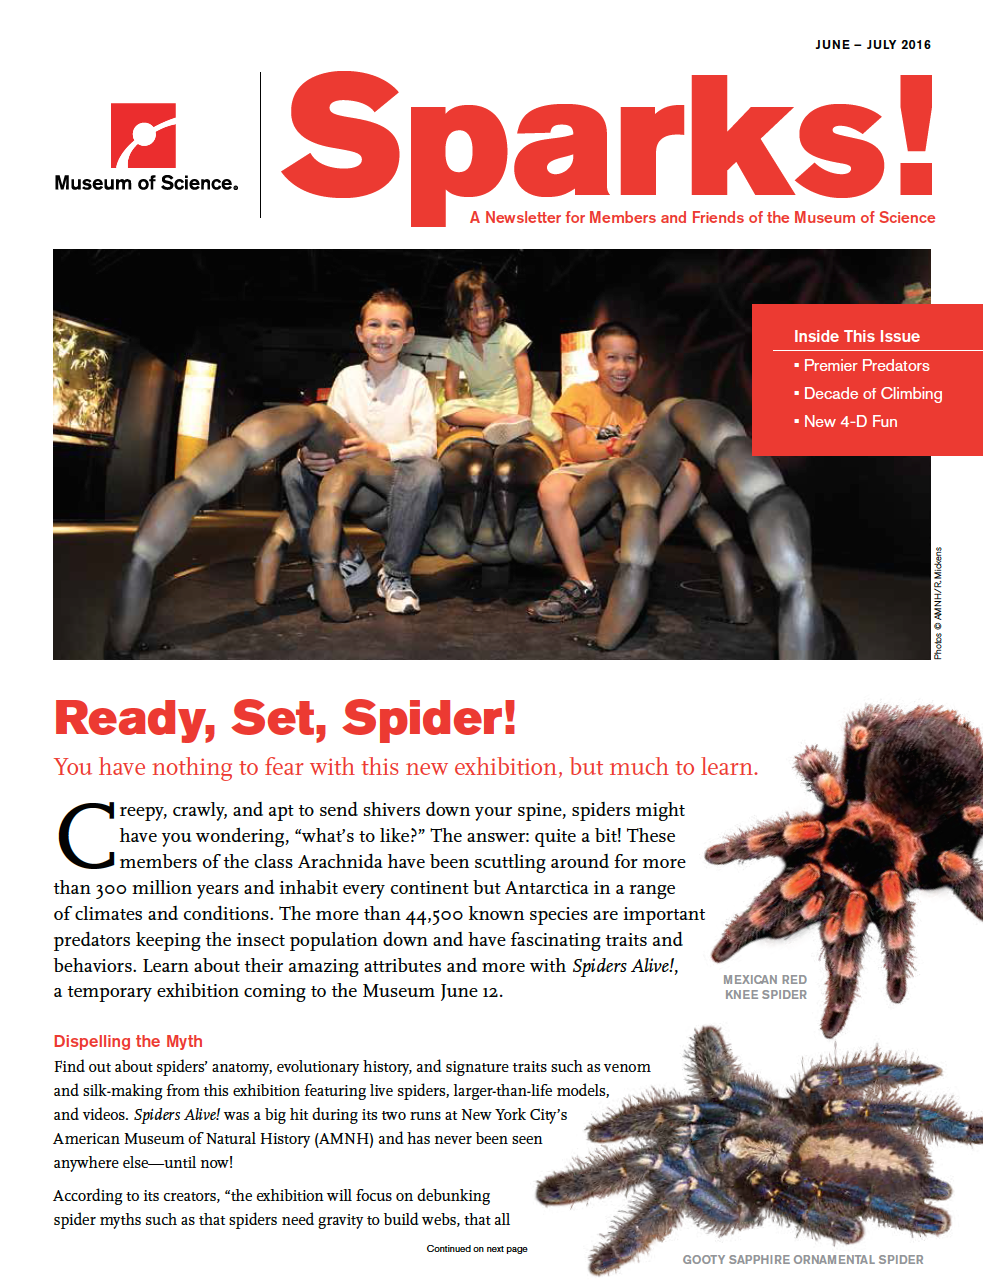 June/July Sparks magazine cover